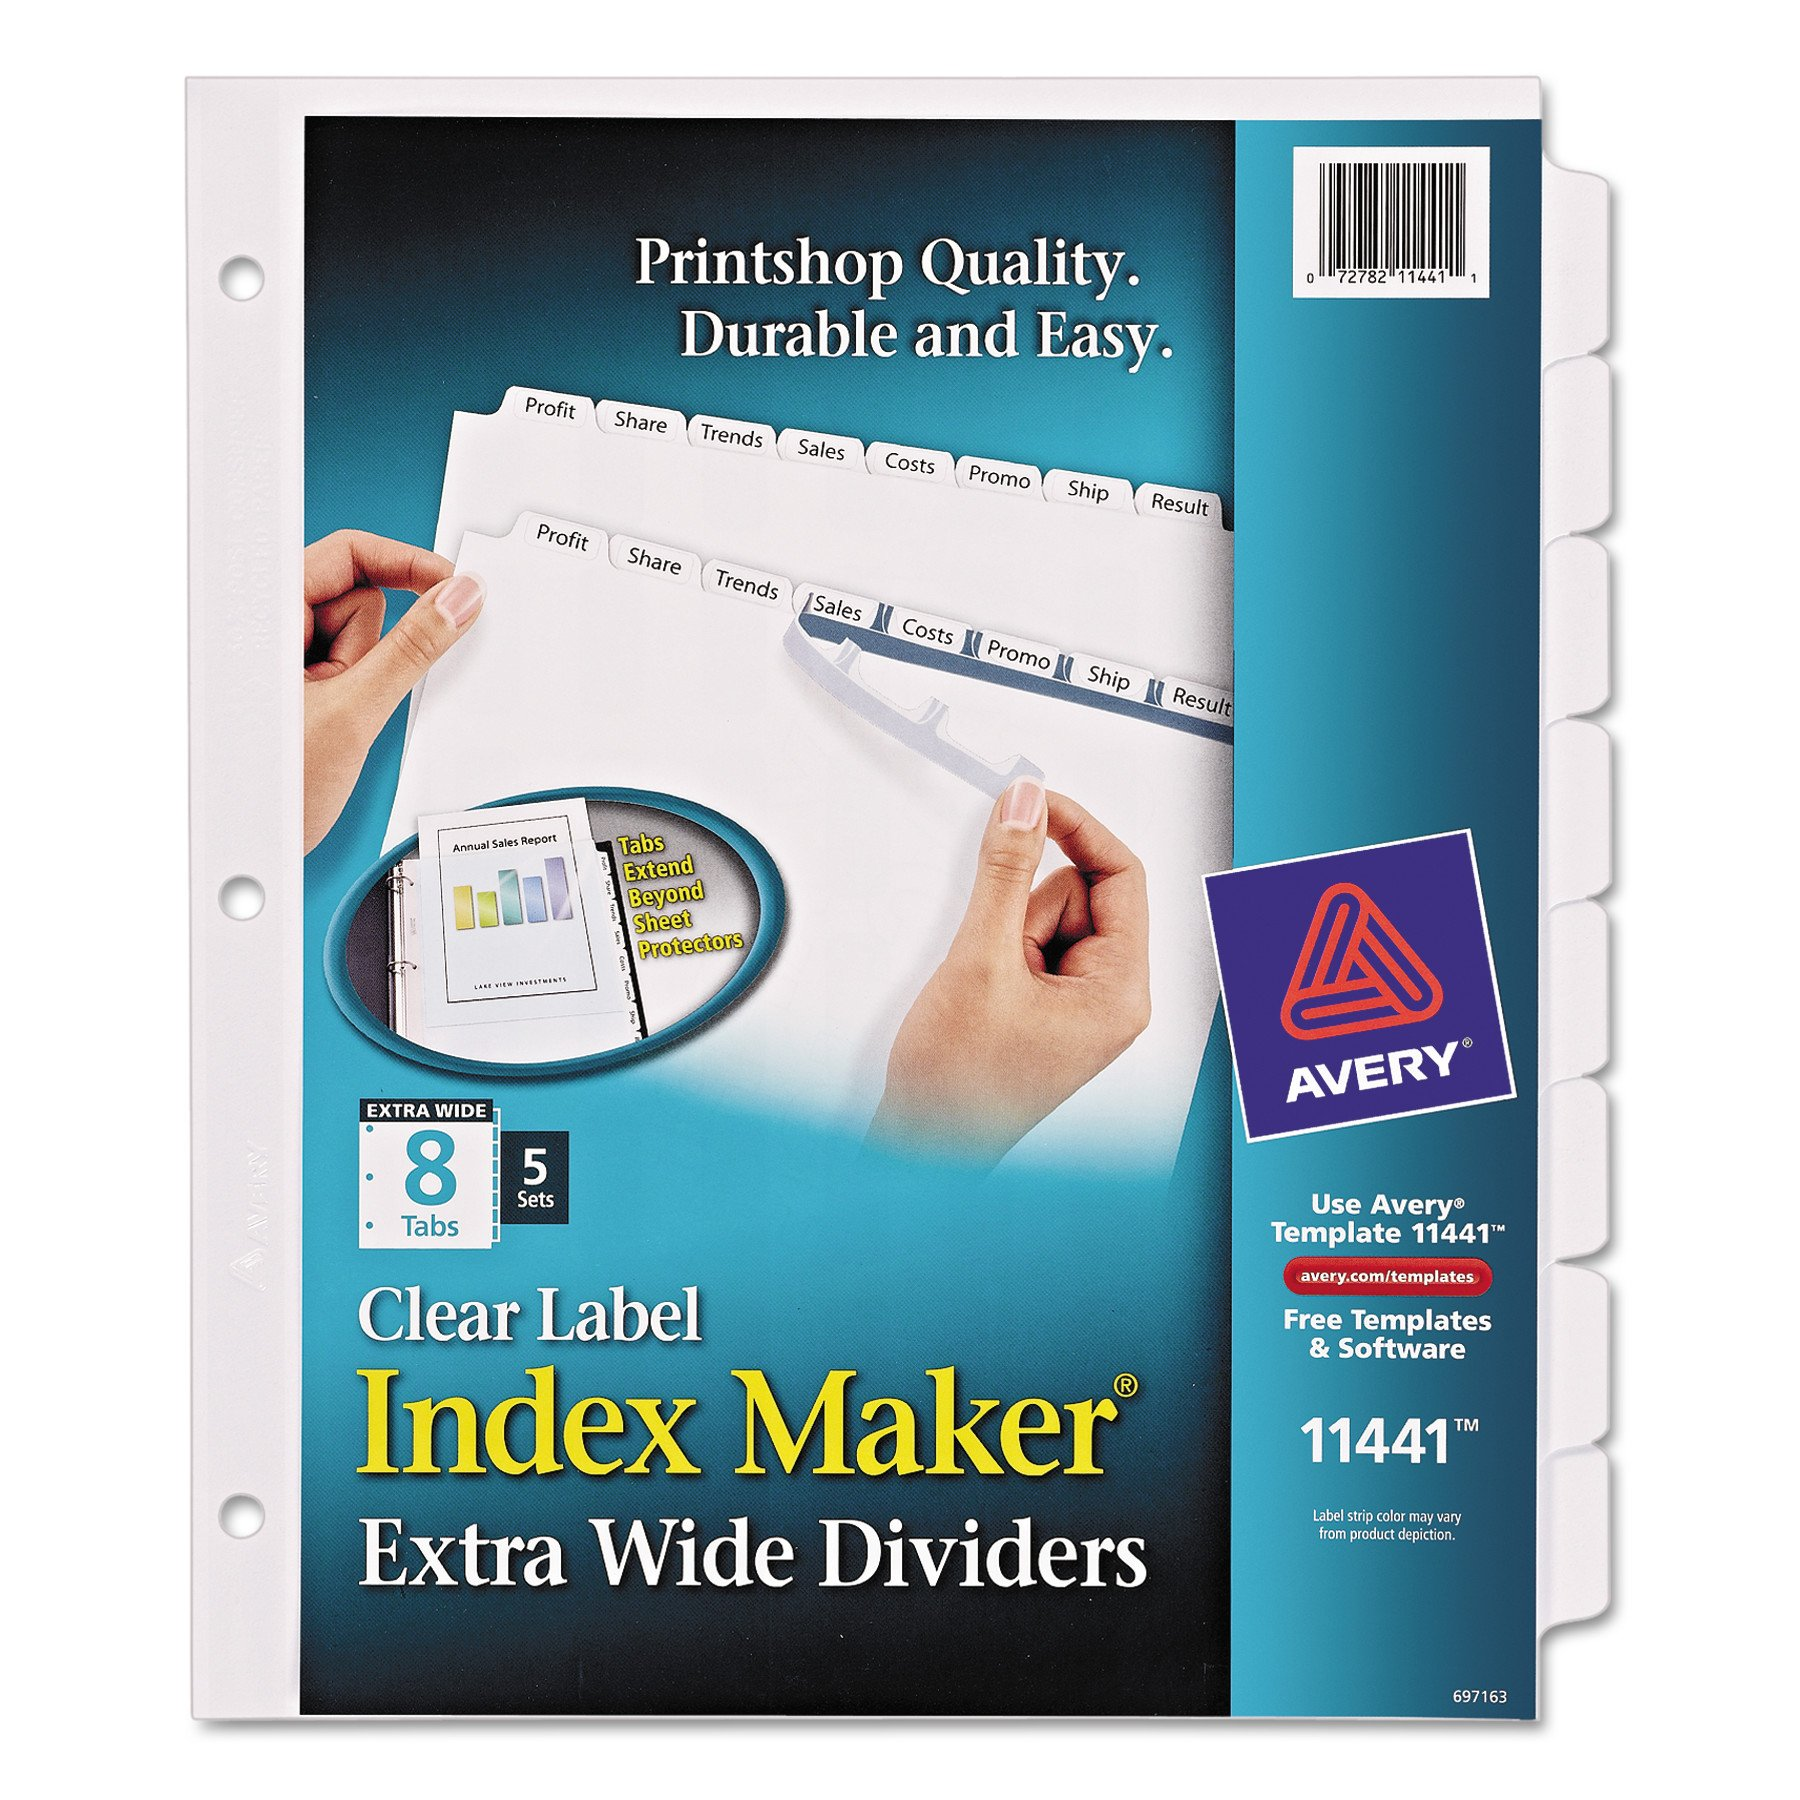 Avery Extra-Wide Dividers, Ink Jet Printer, White, 8-Tab, 9 x 11 Inches, 5 Sets (11441)